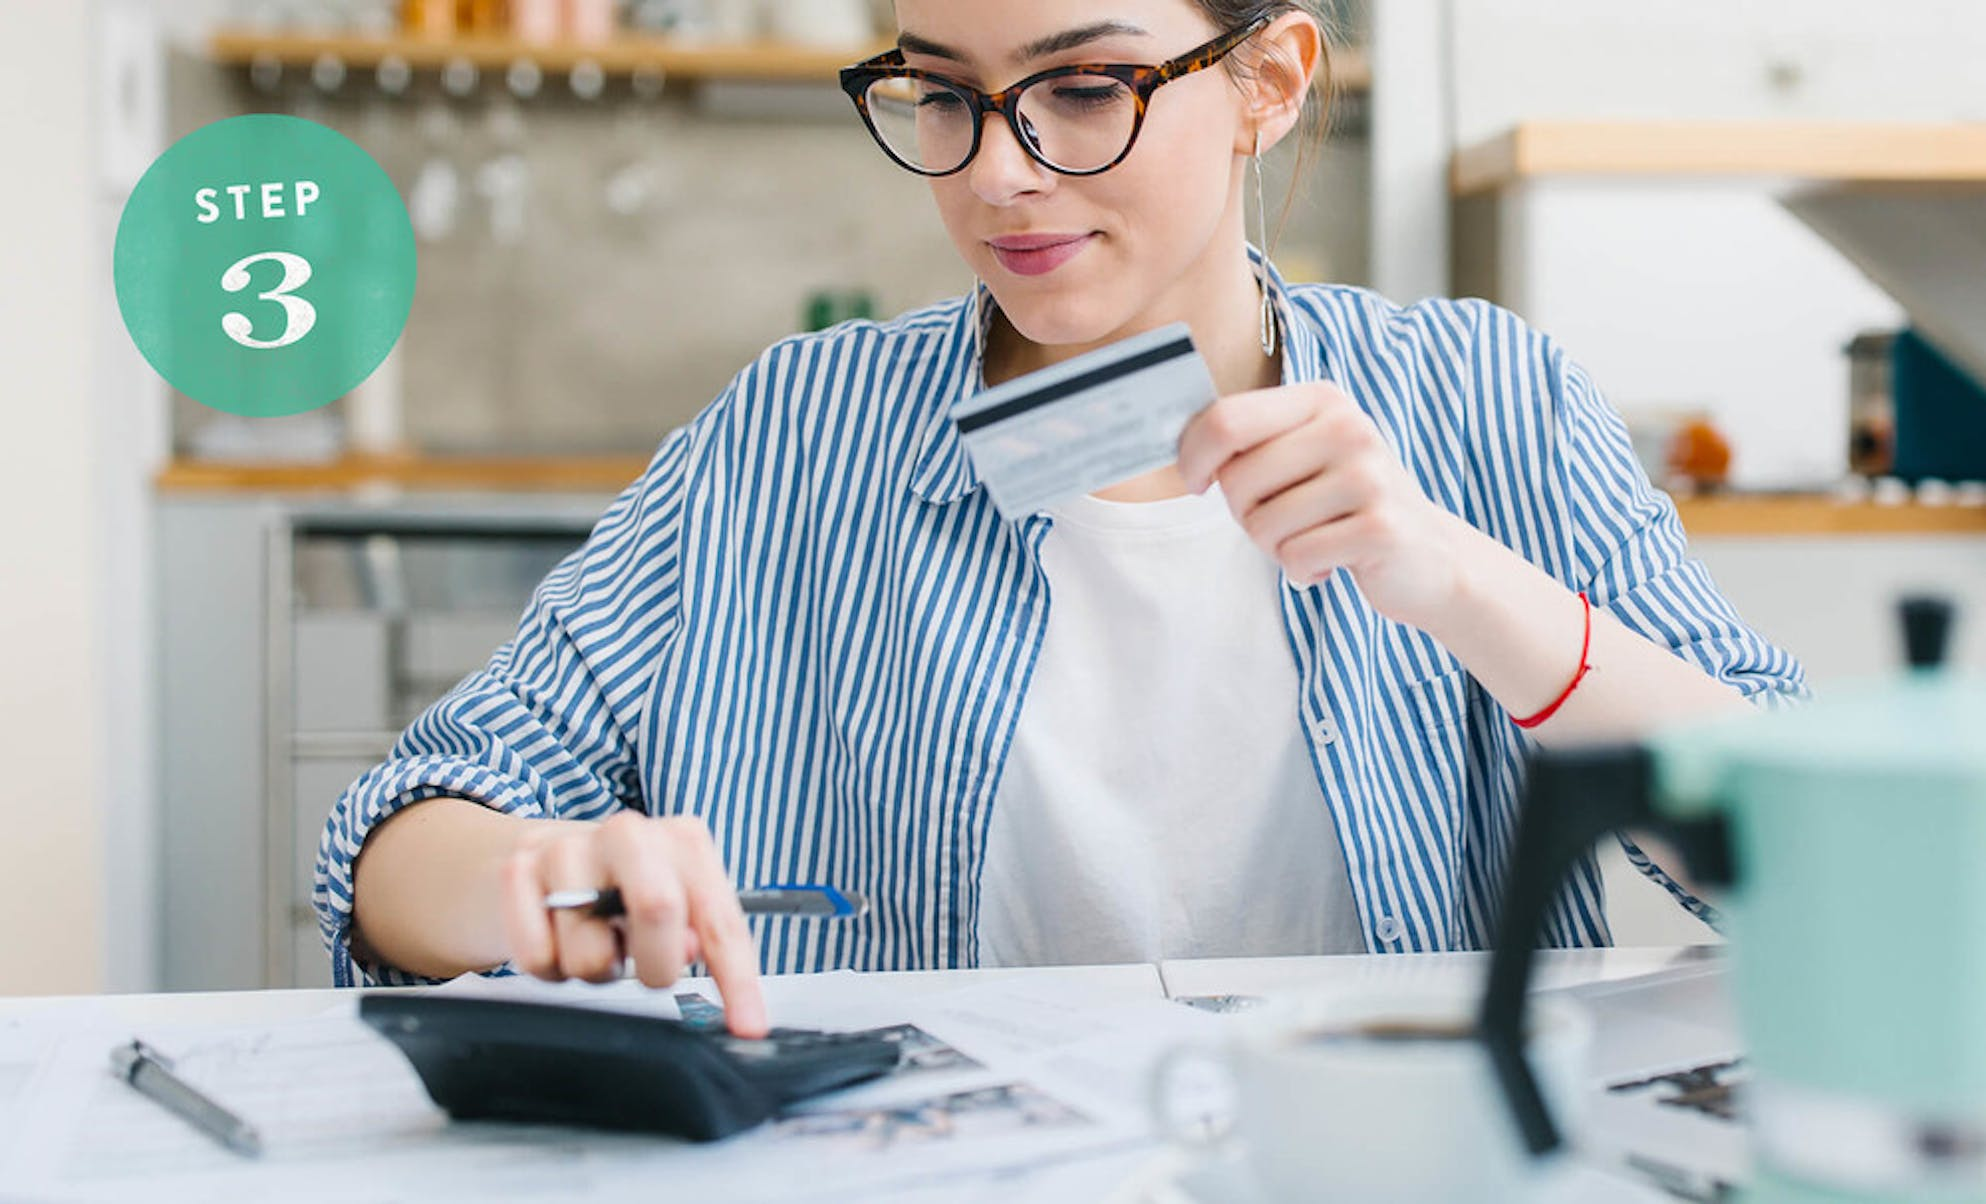 Typing on a calculator while holding a credit card